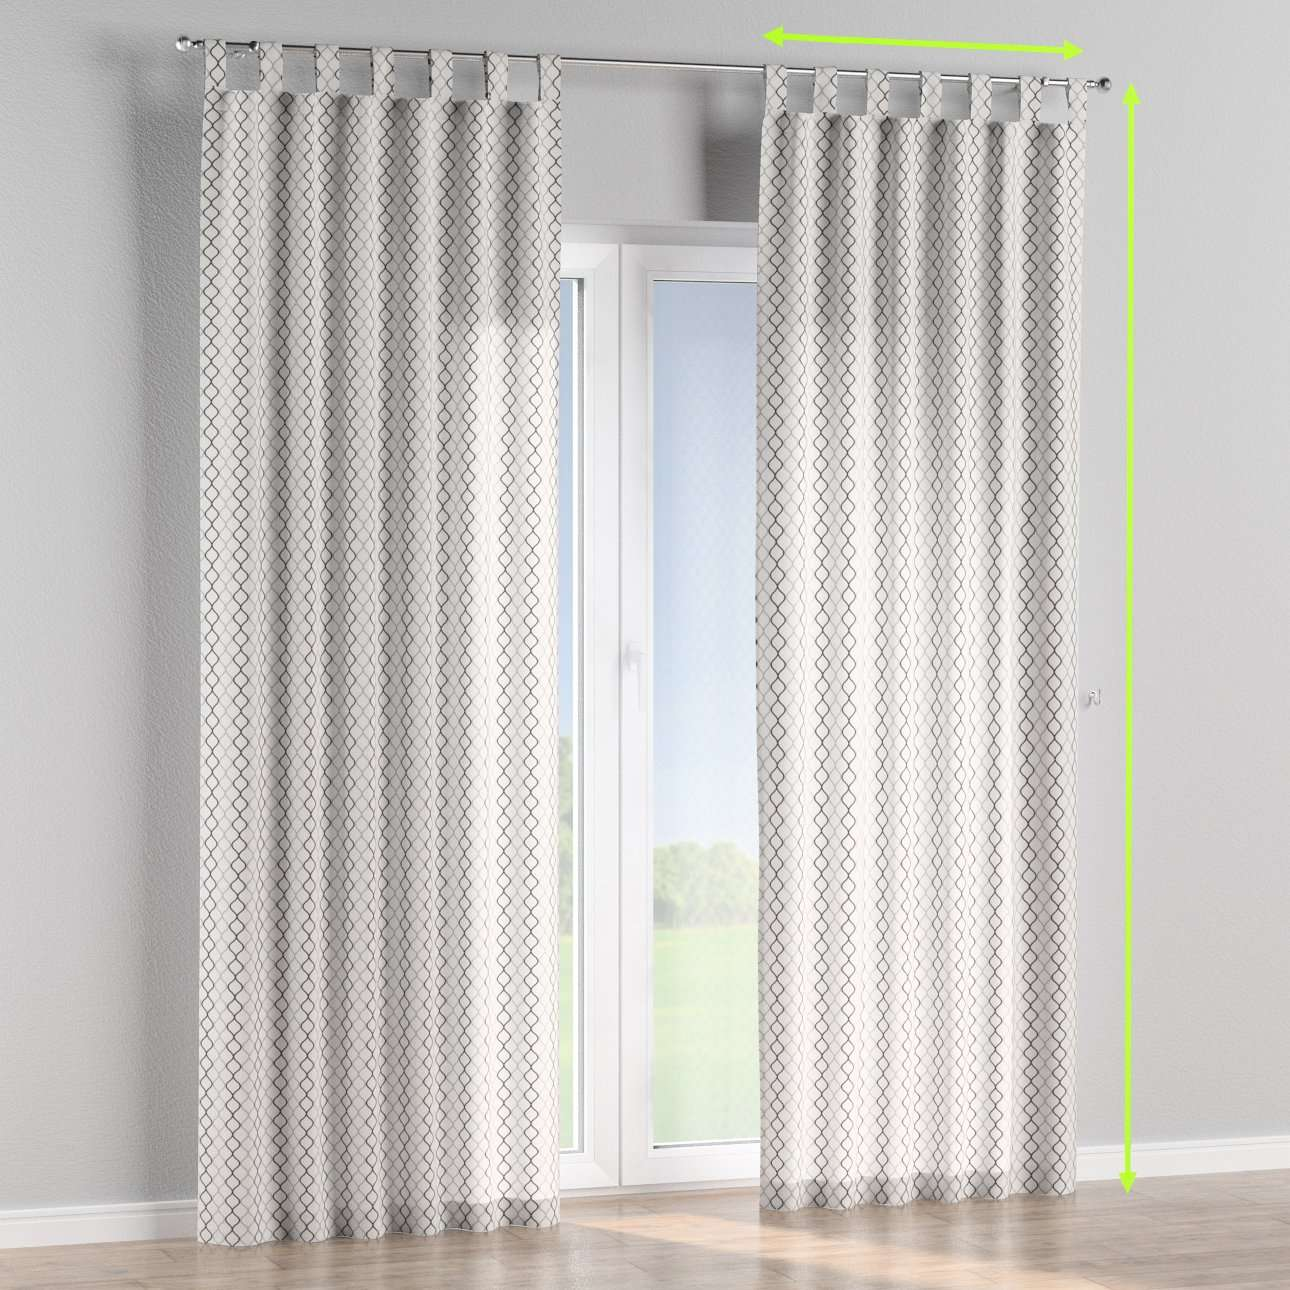 Tab top curtains in collection Geometric, fabric: 141-46